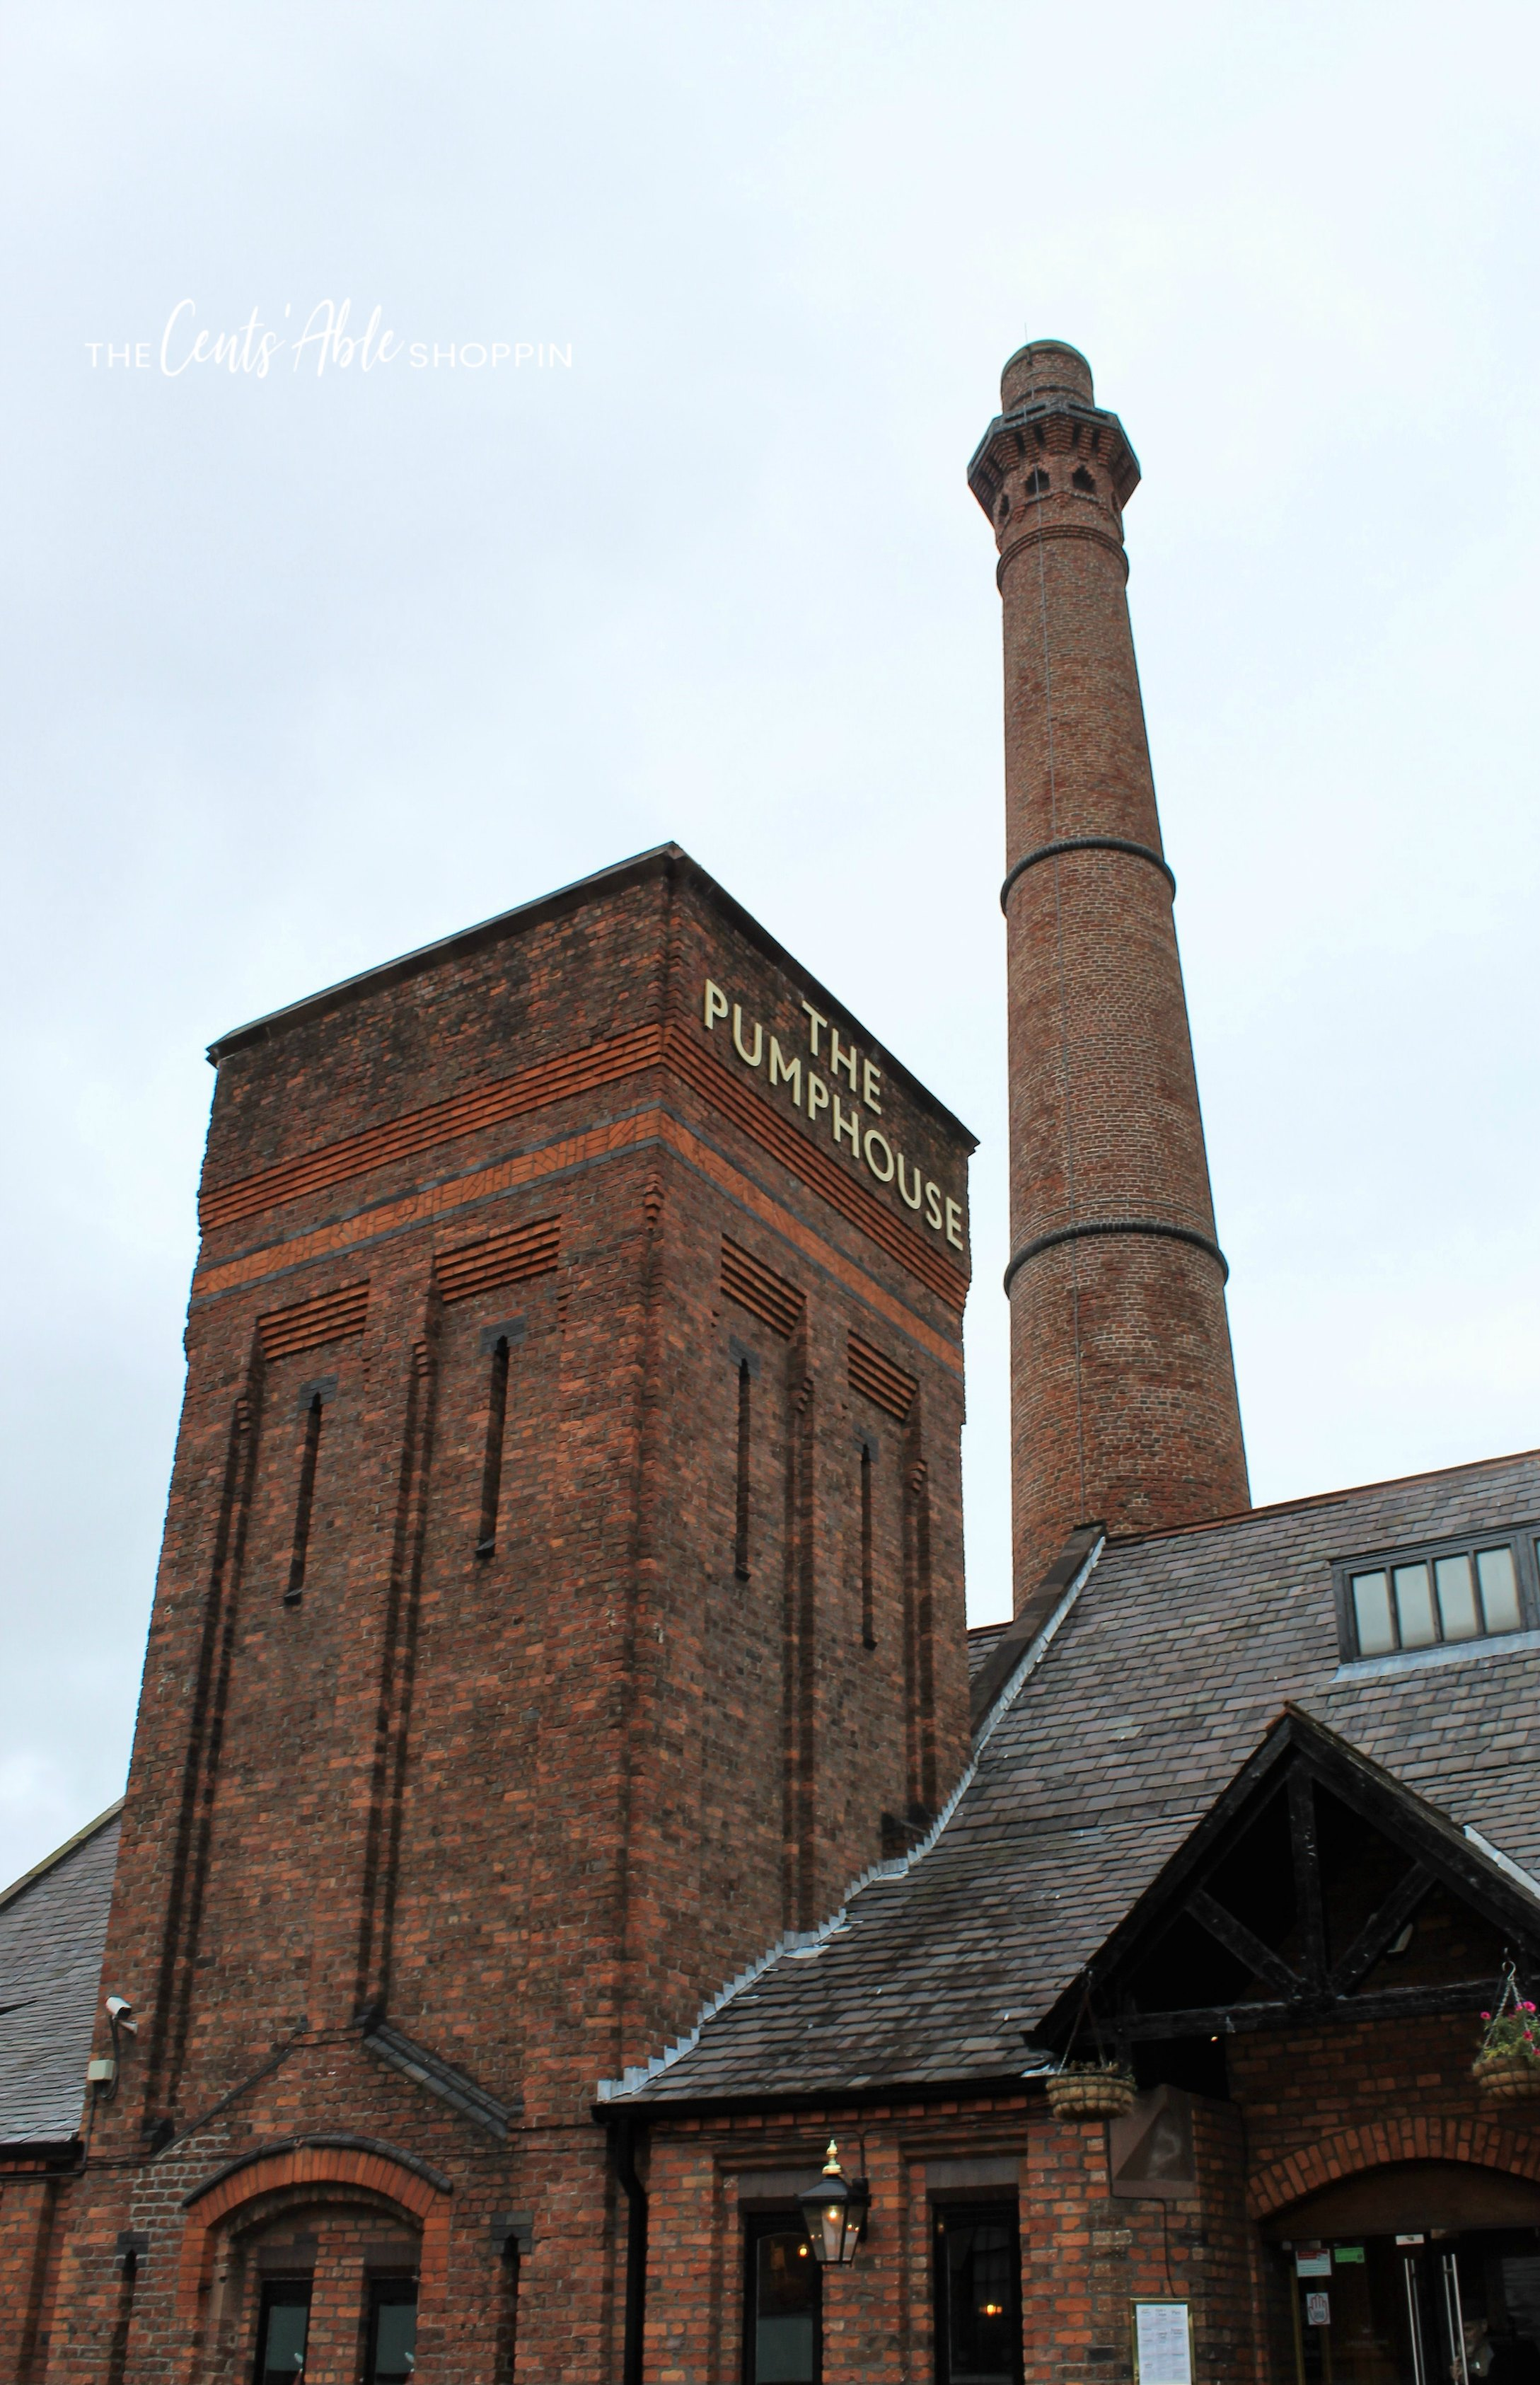 The Pumphouse, Liverpool, England